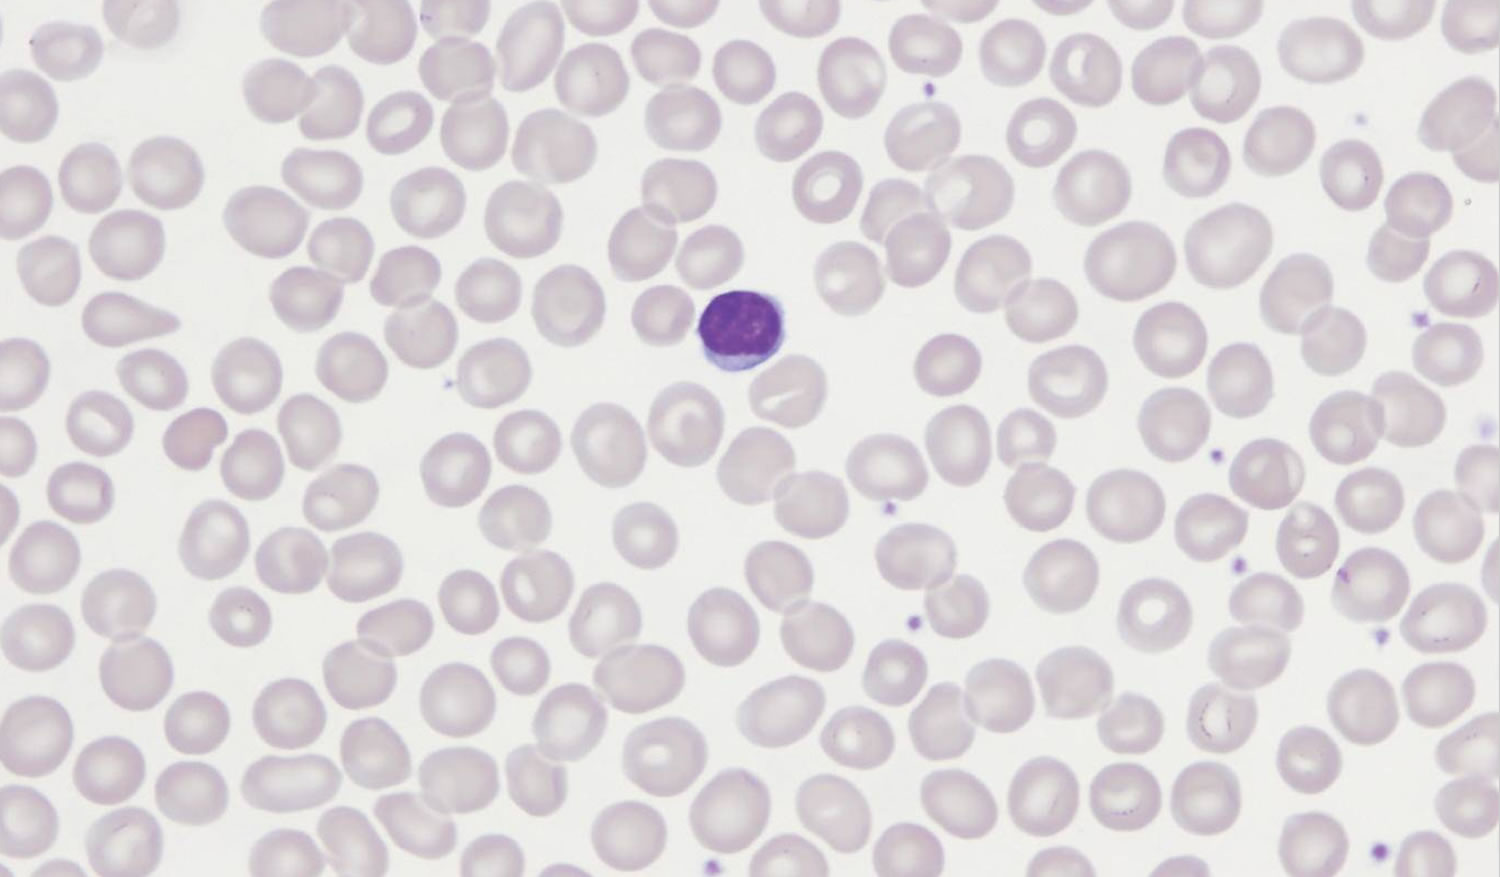 Macrocytic Anemia - Causes, Symptoms & Macrocytic Anemia ... B12 Deficiency Smear